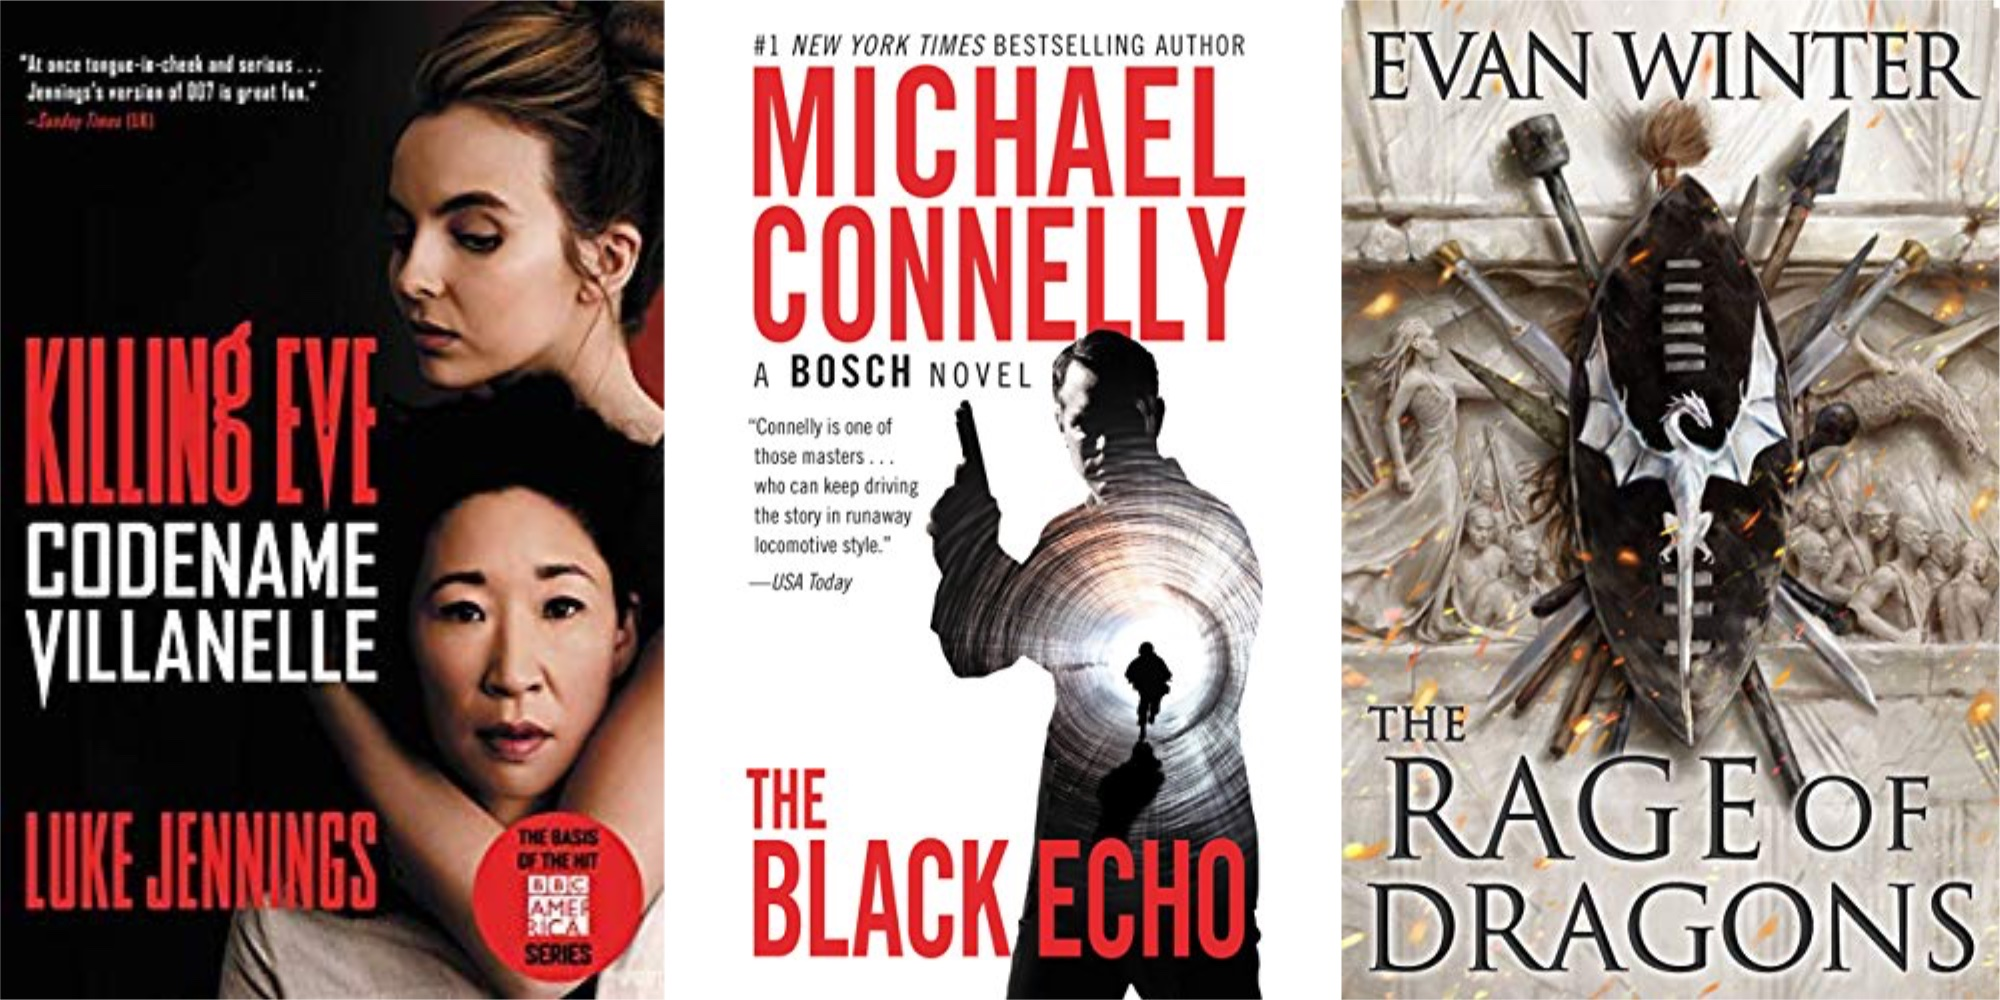 Get hooked on a new series with discounted Kindle eBooks from under $1, today only